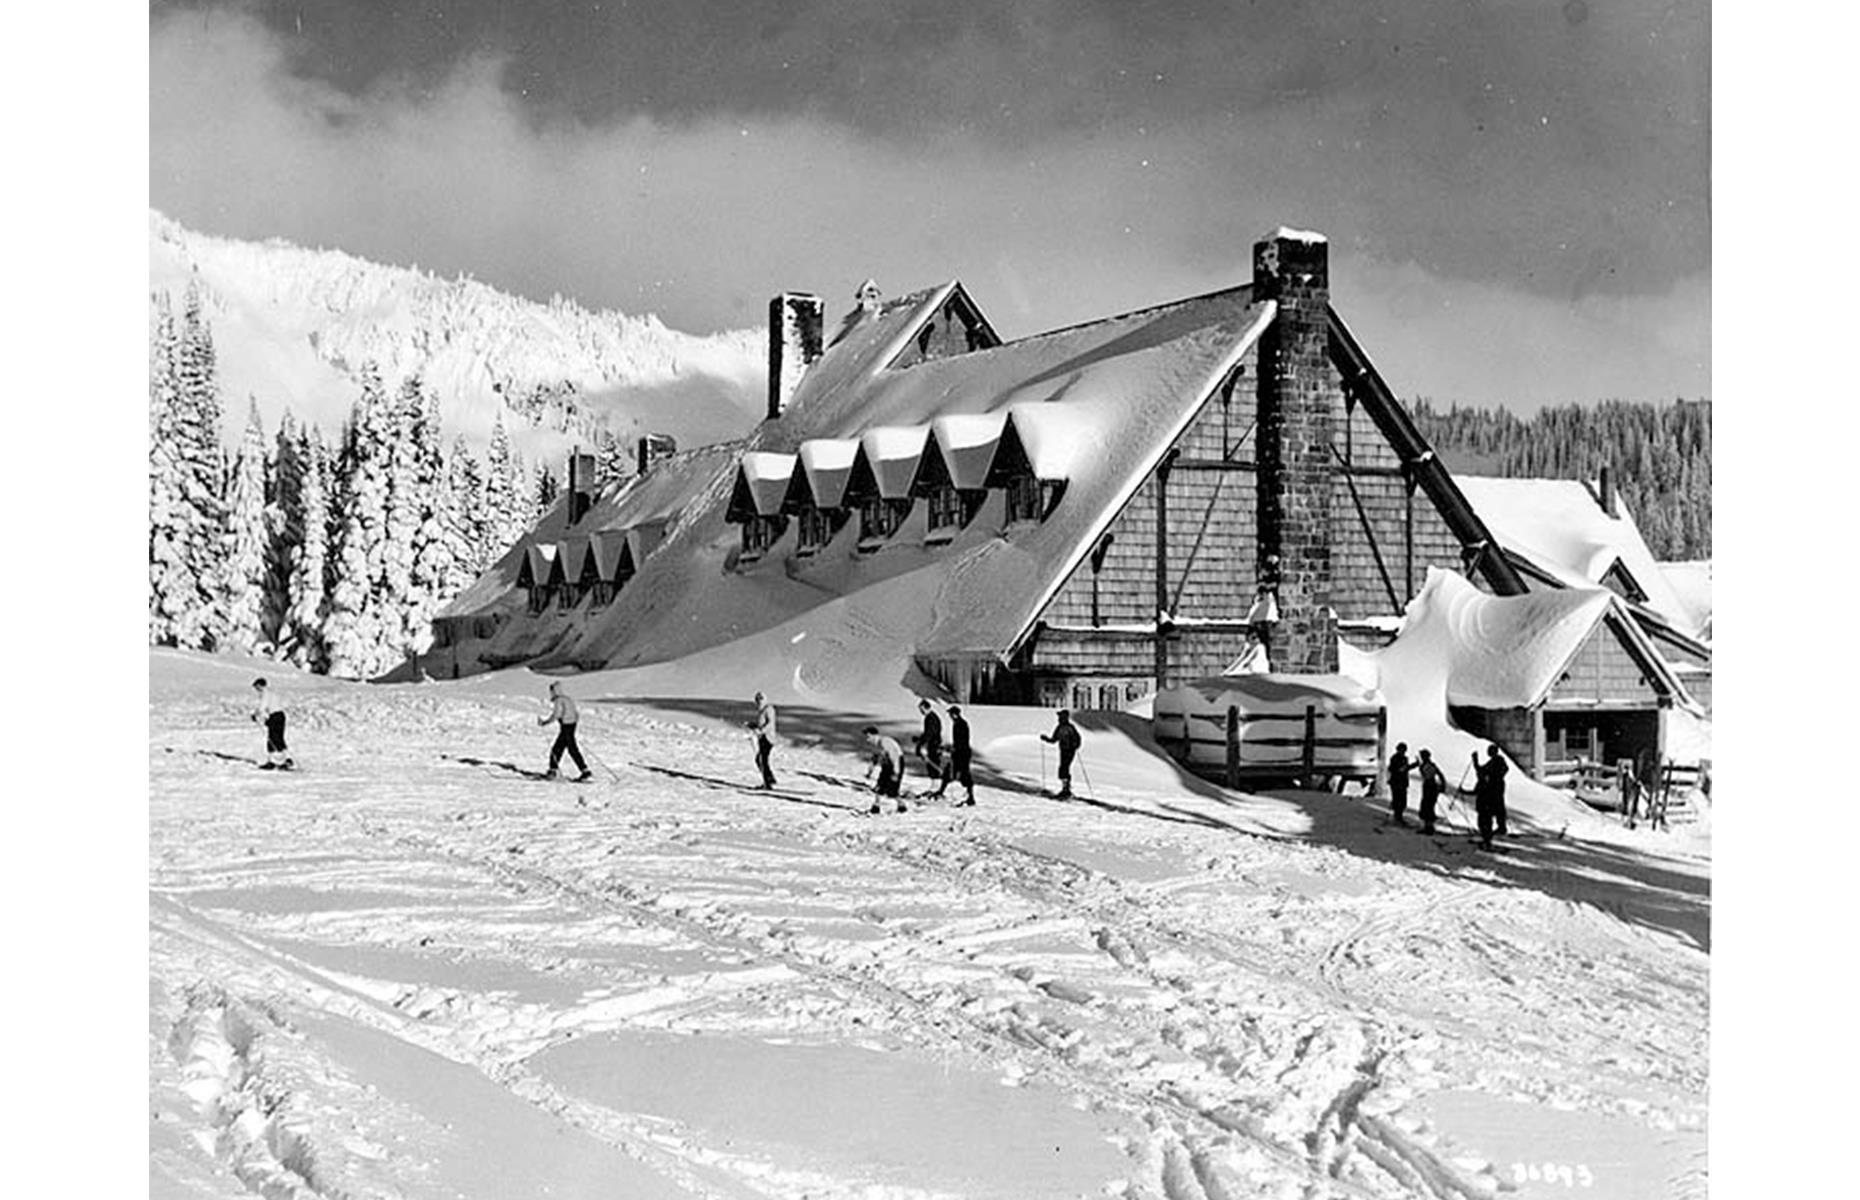 Slide 27 of 47: The Paradise area is still one of the most popular regions of the park today, known for its blossom-flecked meadows and its incredible opportunities for winter sports. Pictured here in mid-winter in the 1930s, skiers strike out from Paradise Inn, which is among the most well-loved lodges in the national park system. Dating to 1916, the inn makes for a dreamy winter retreat today, with its low beams, snug rooms and large fireplaces.